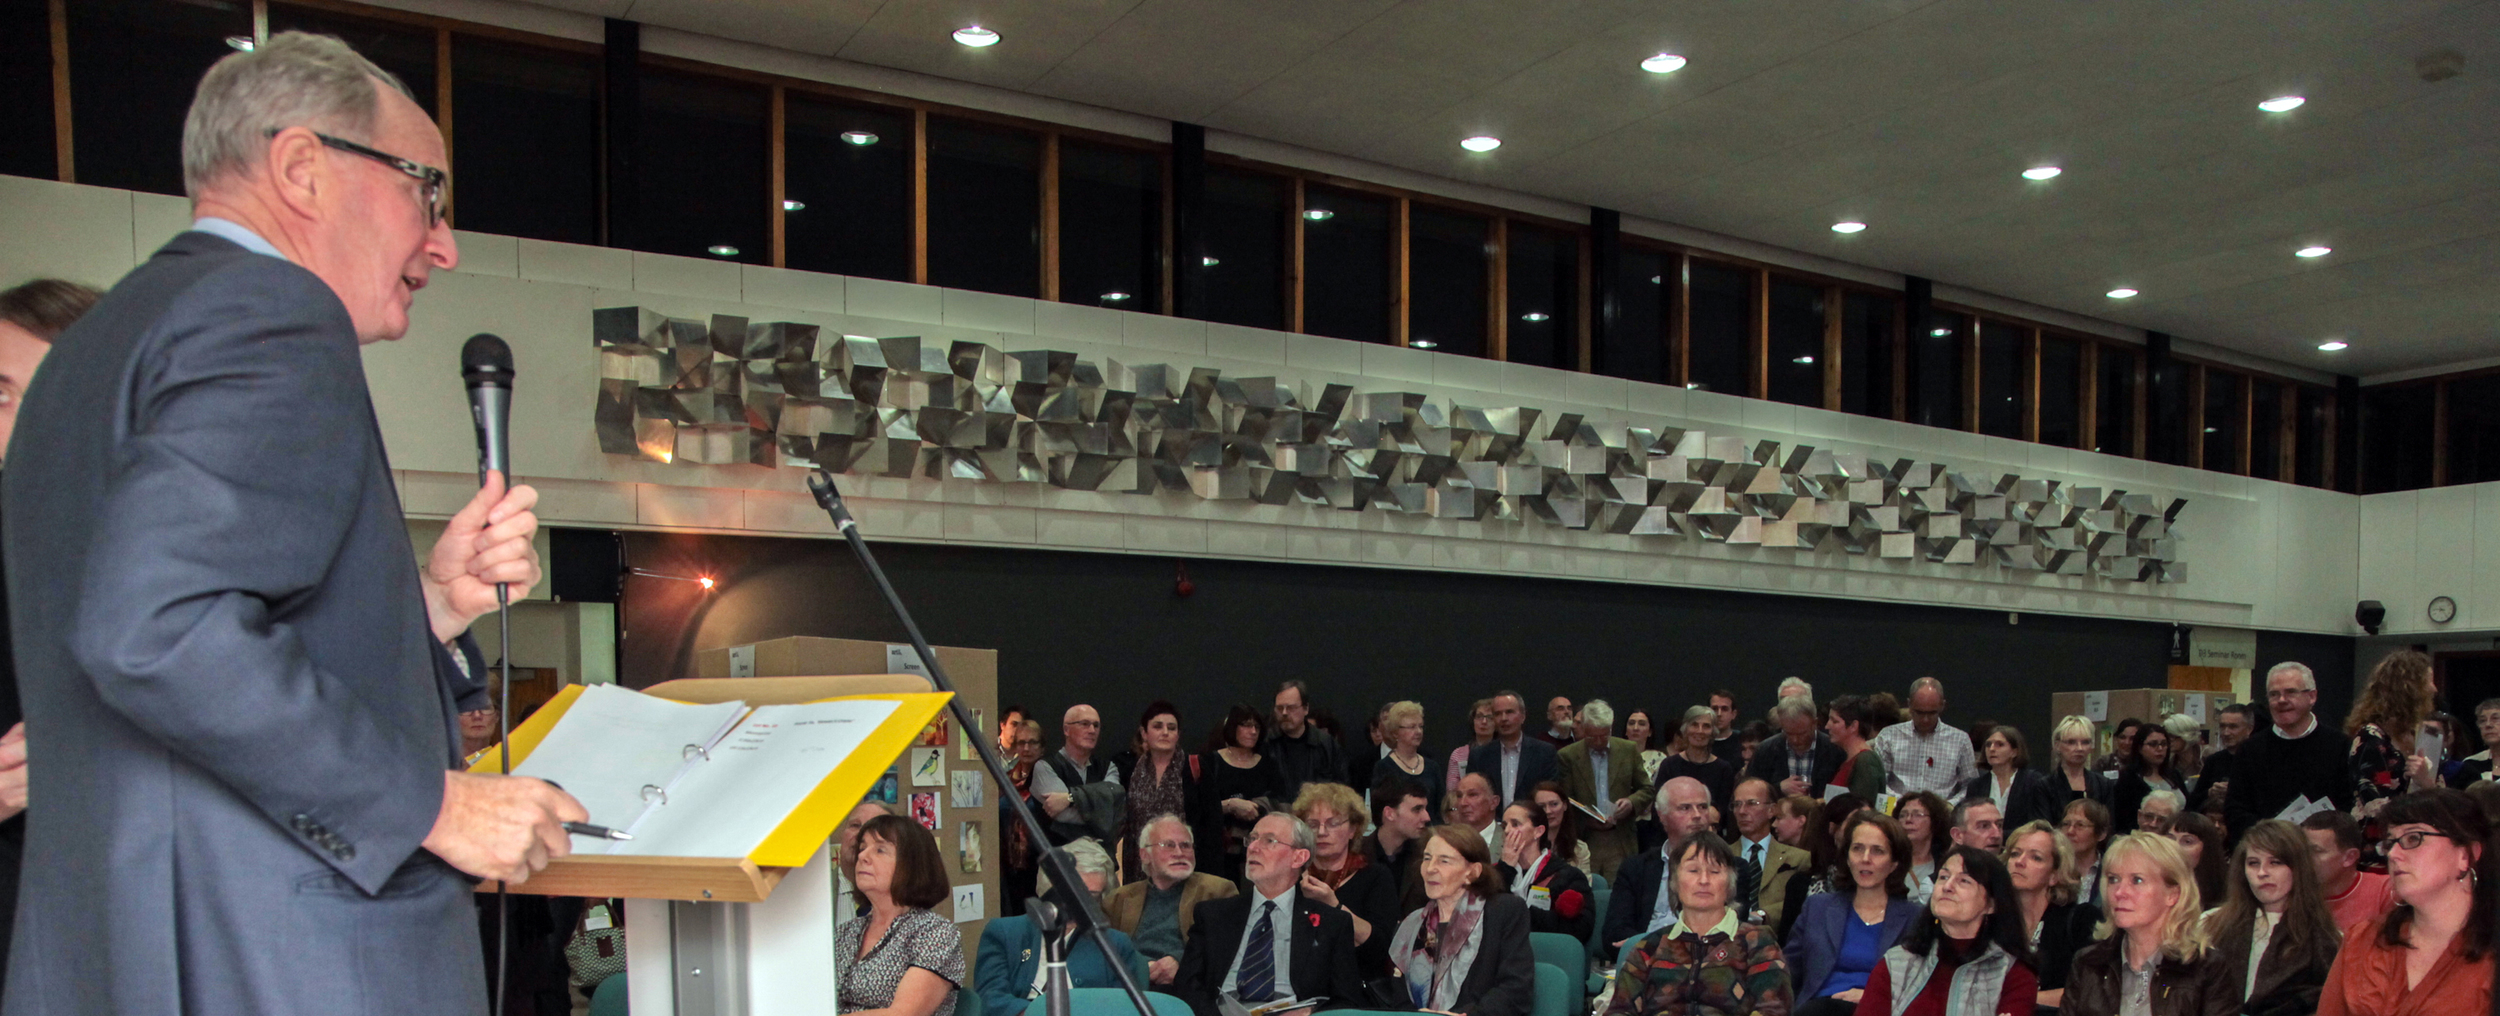 Auctioneer David Leggat gets the crowds attention for the opening bid